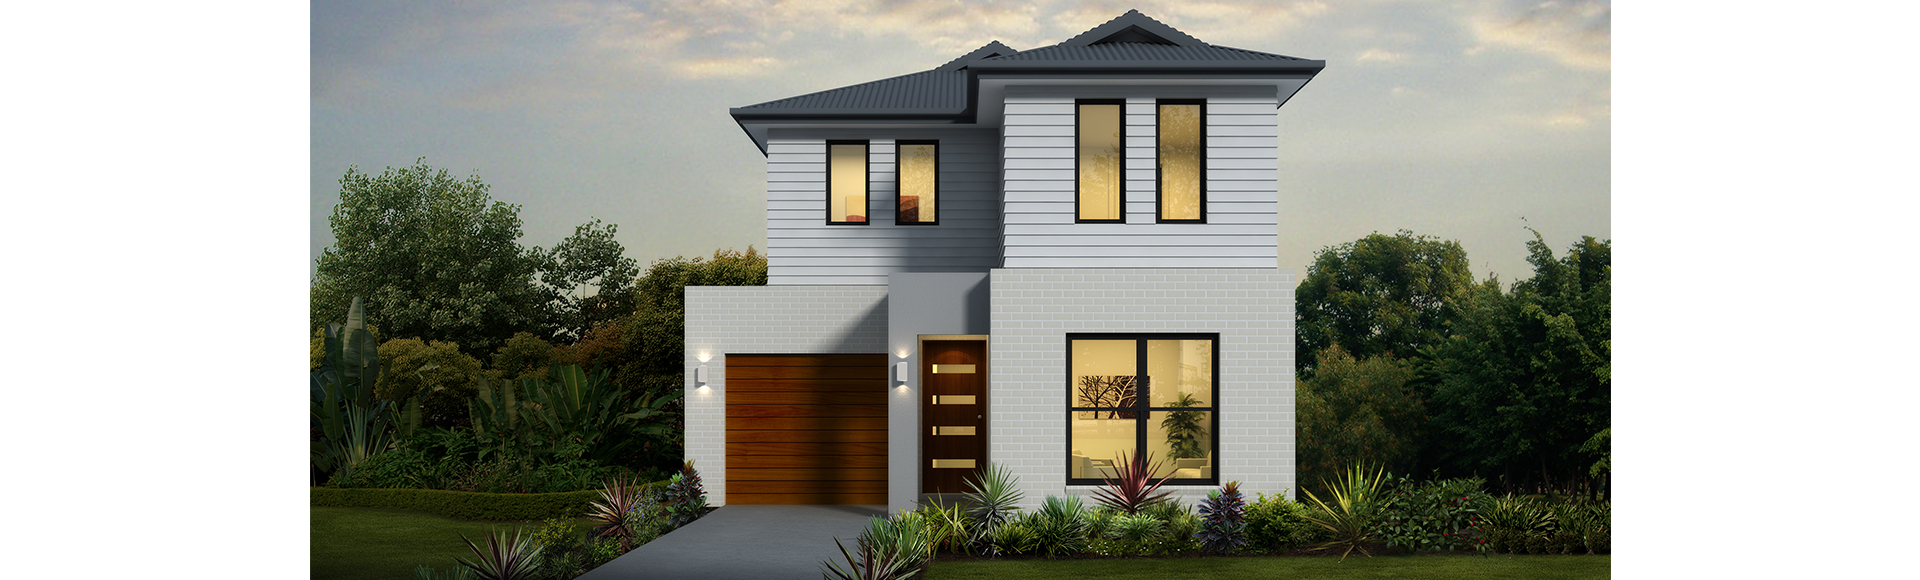 Altrove; Bellriver Homes